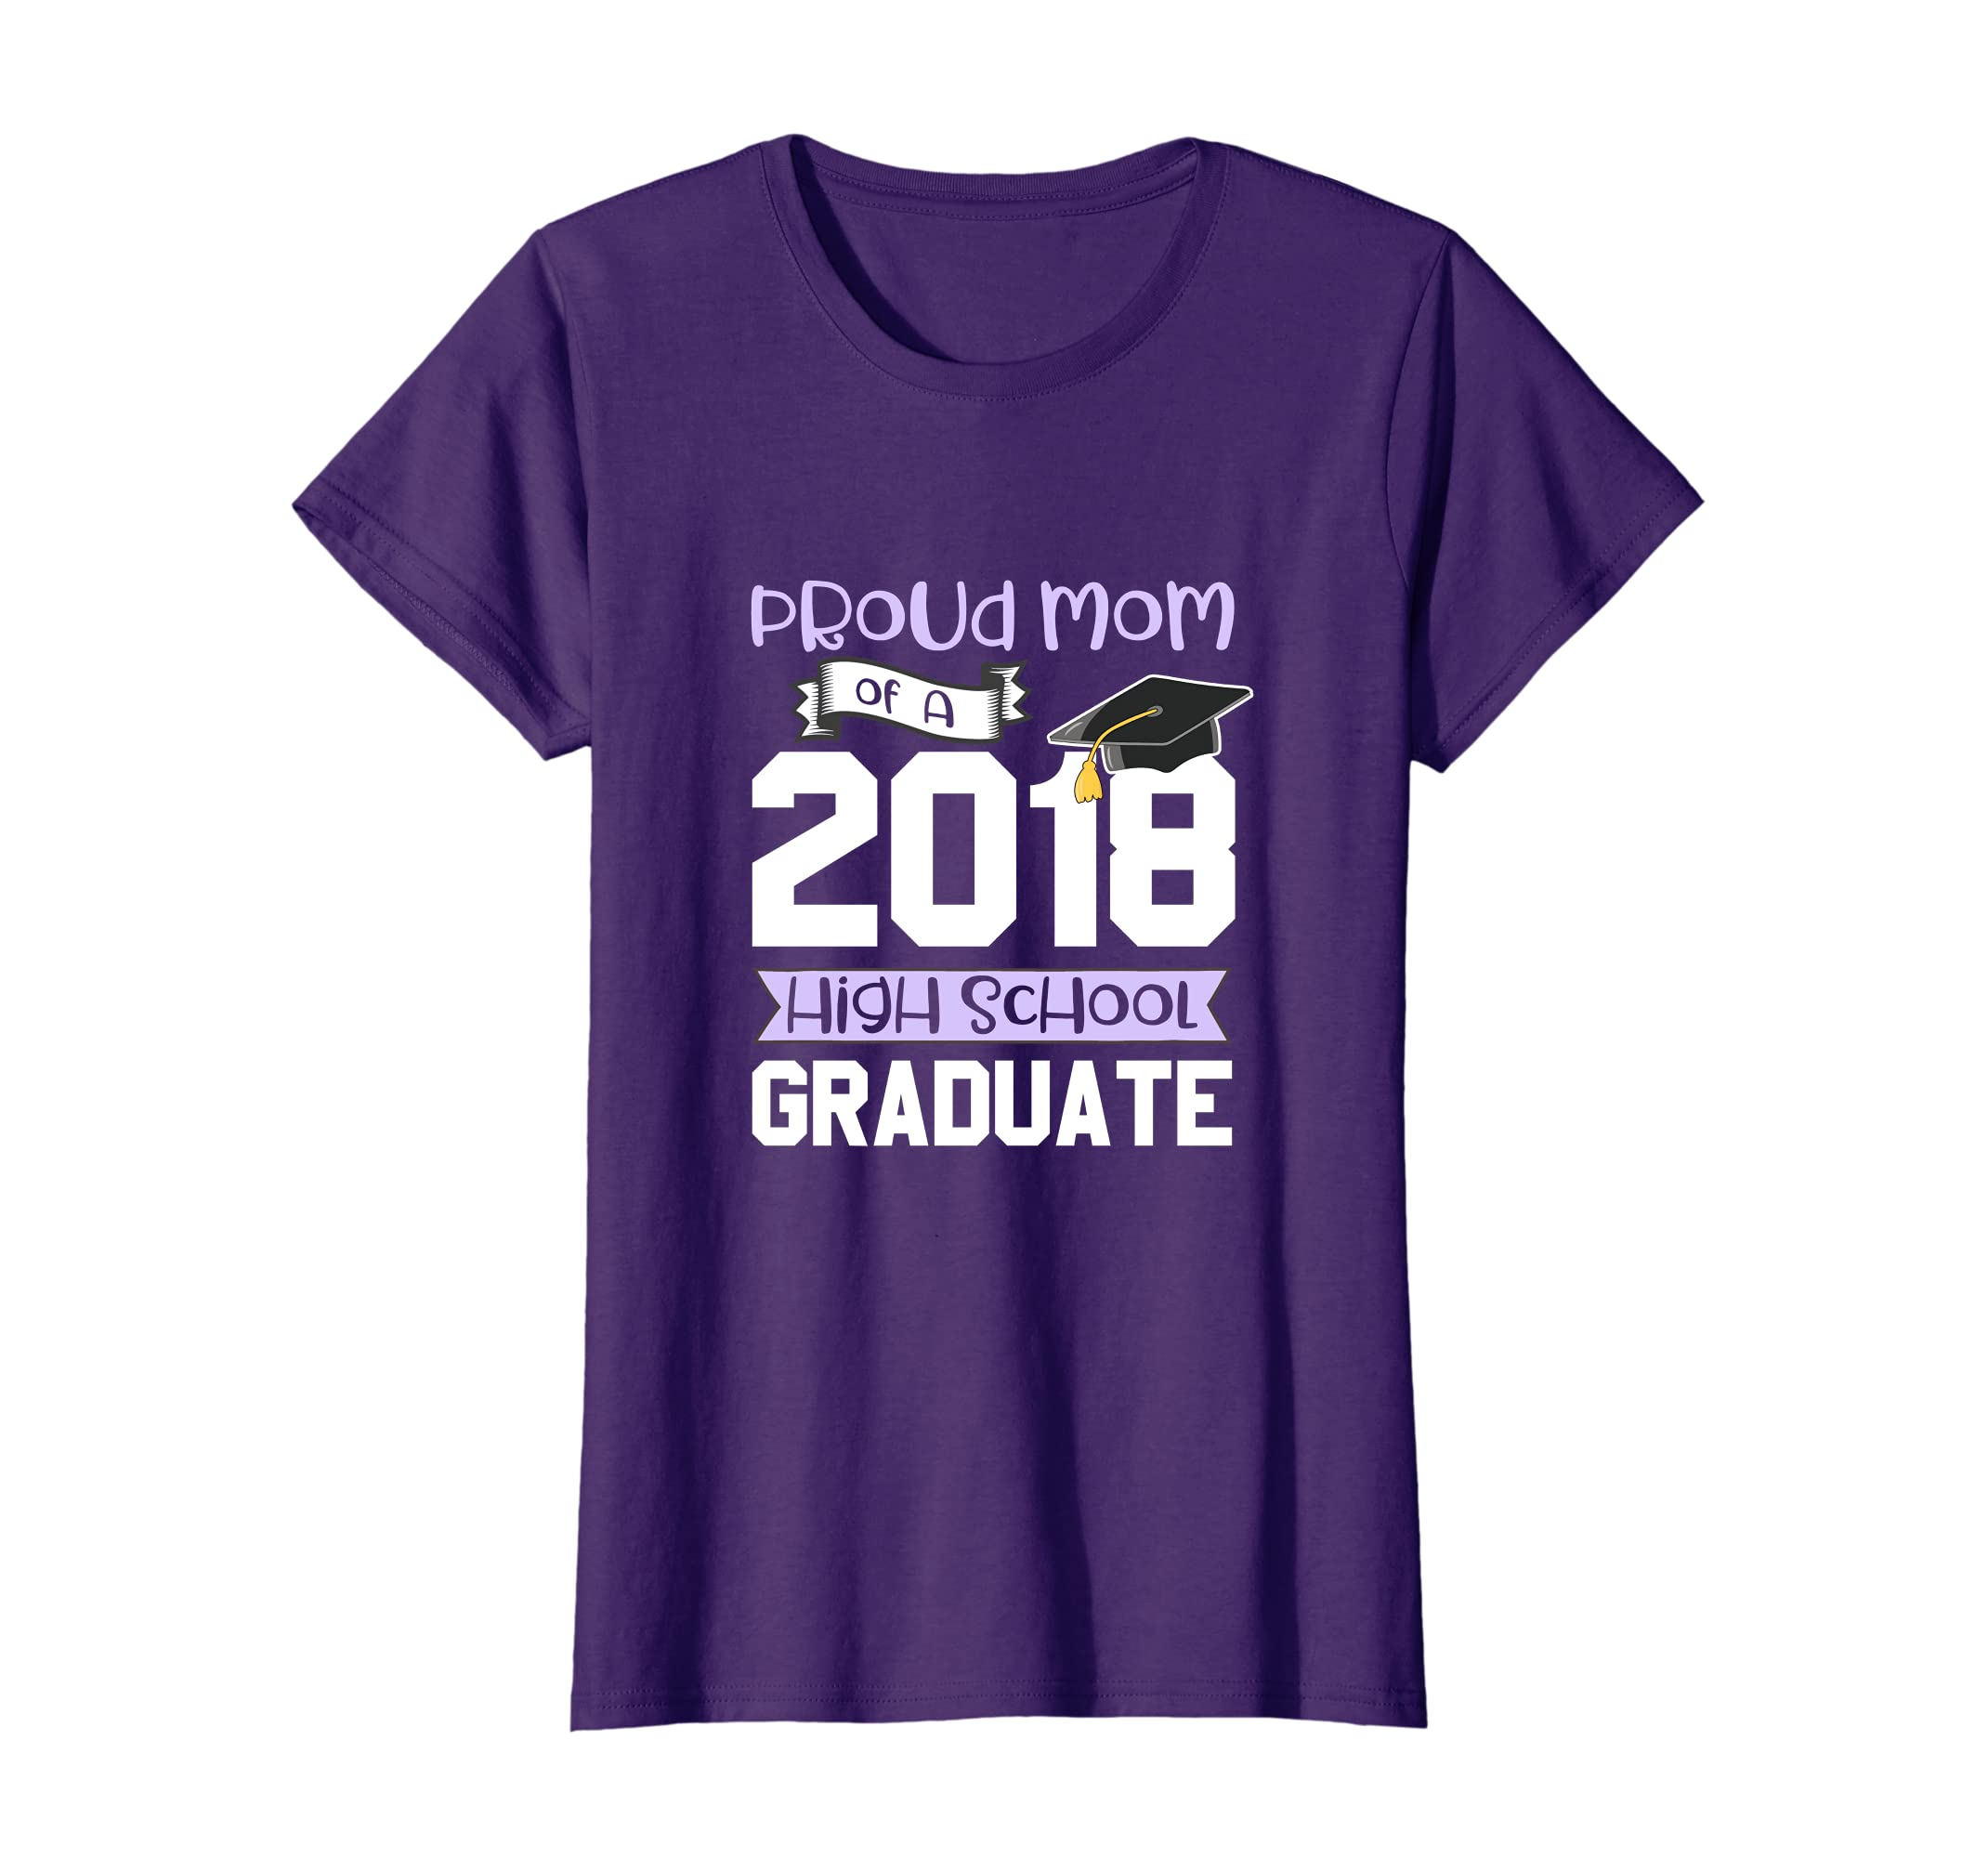 15c3b7938 Amazon.com: Graduation Shirts For Family 2018 Proud Mom High School Tee:  Clothing